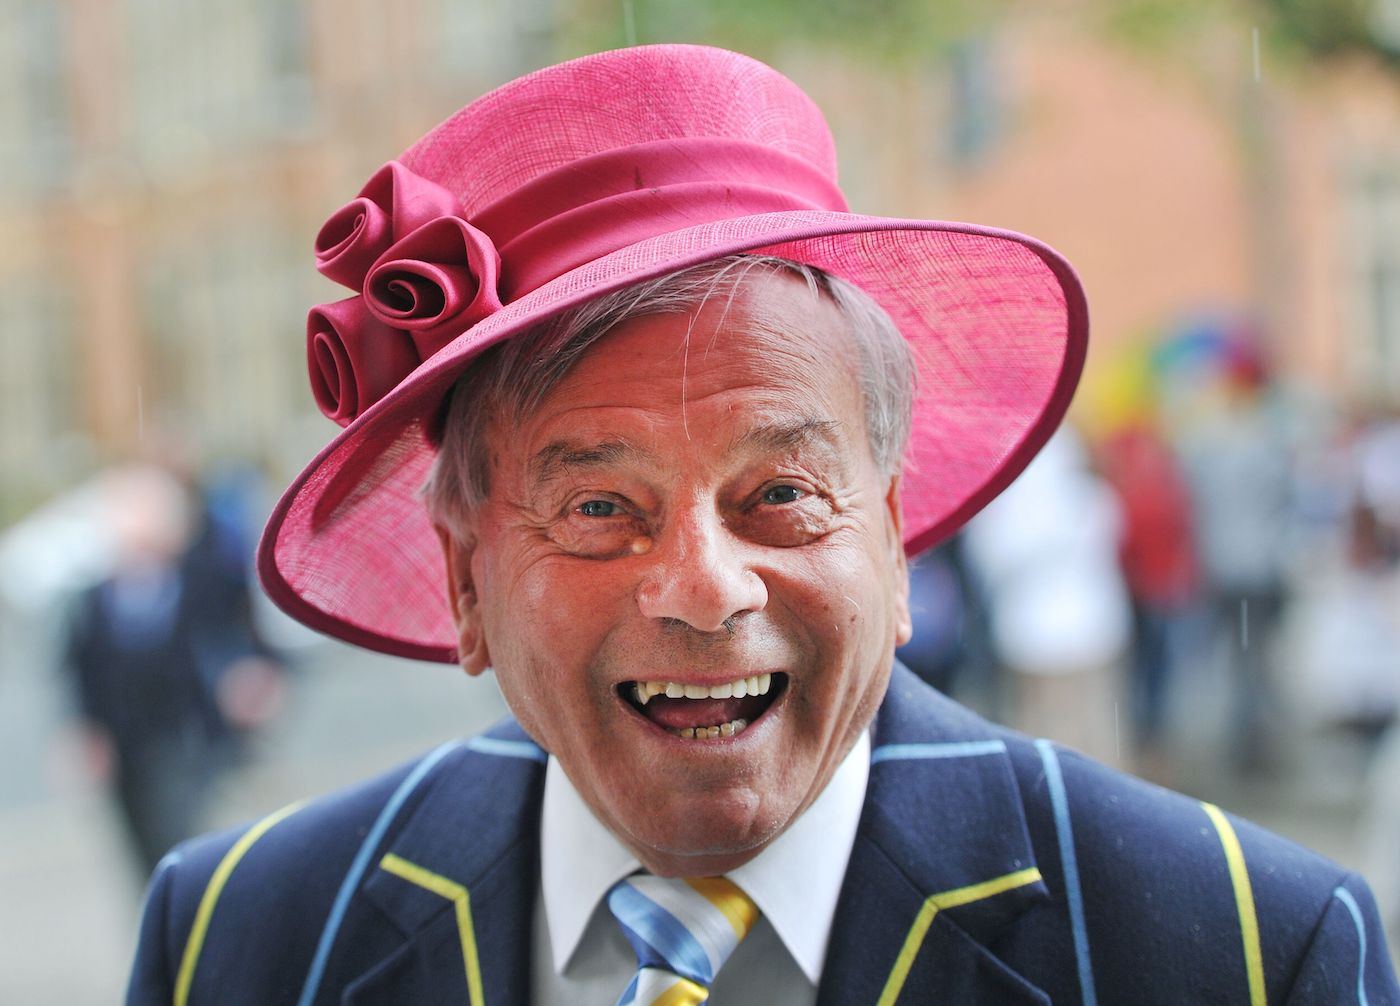 Howzzzhat! Dickie Bird's all ready for Royal Ascot